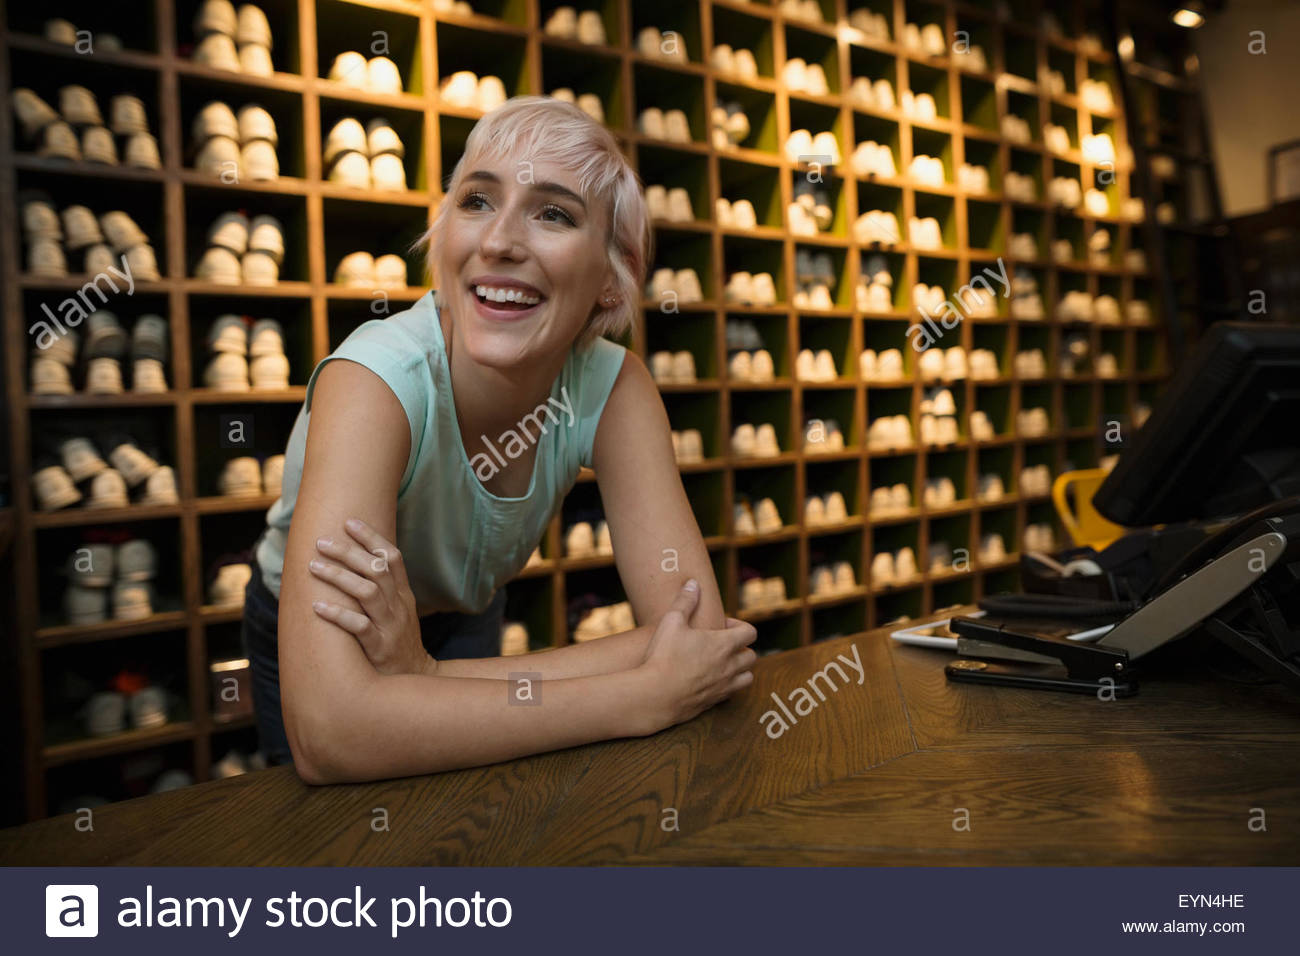 Smiling woman leaning on bowling shoes rental counter - Stock Image